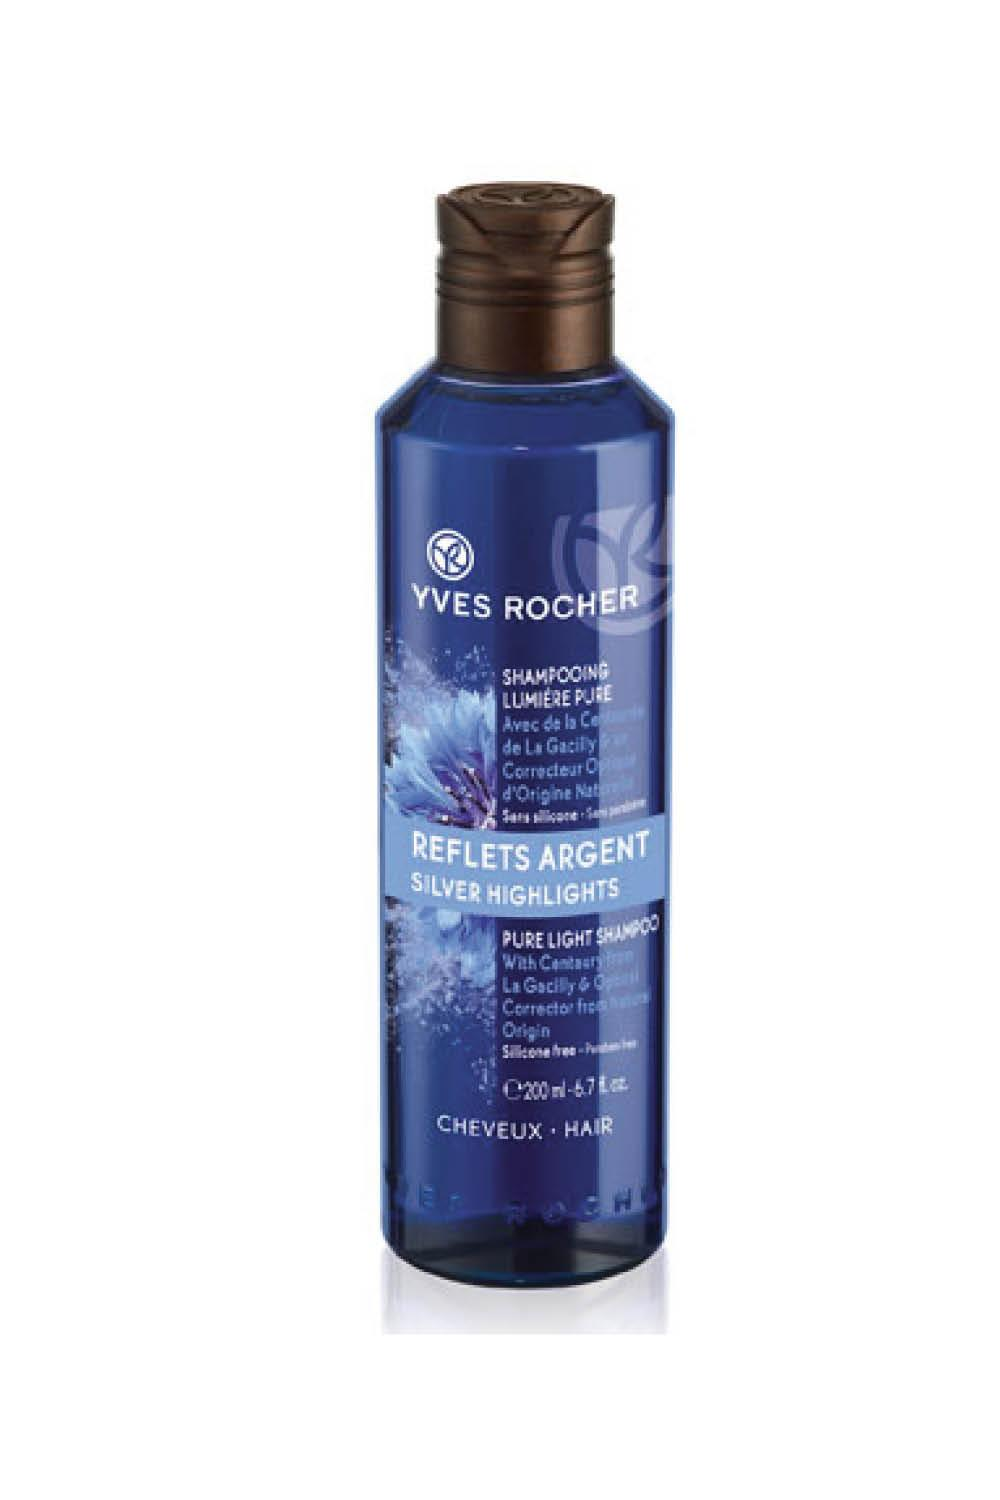 champu pelo canas yves rocher. Si tienes canas...